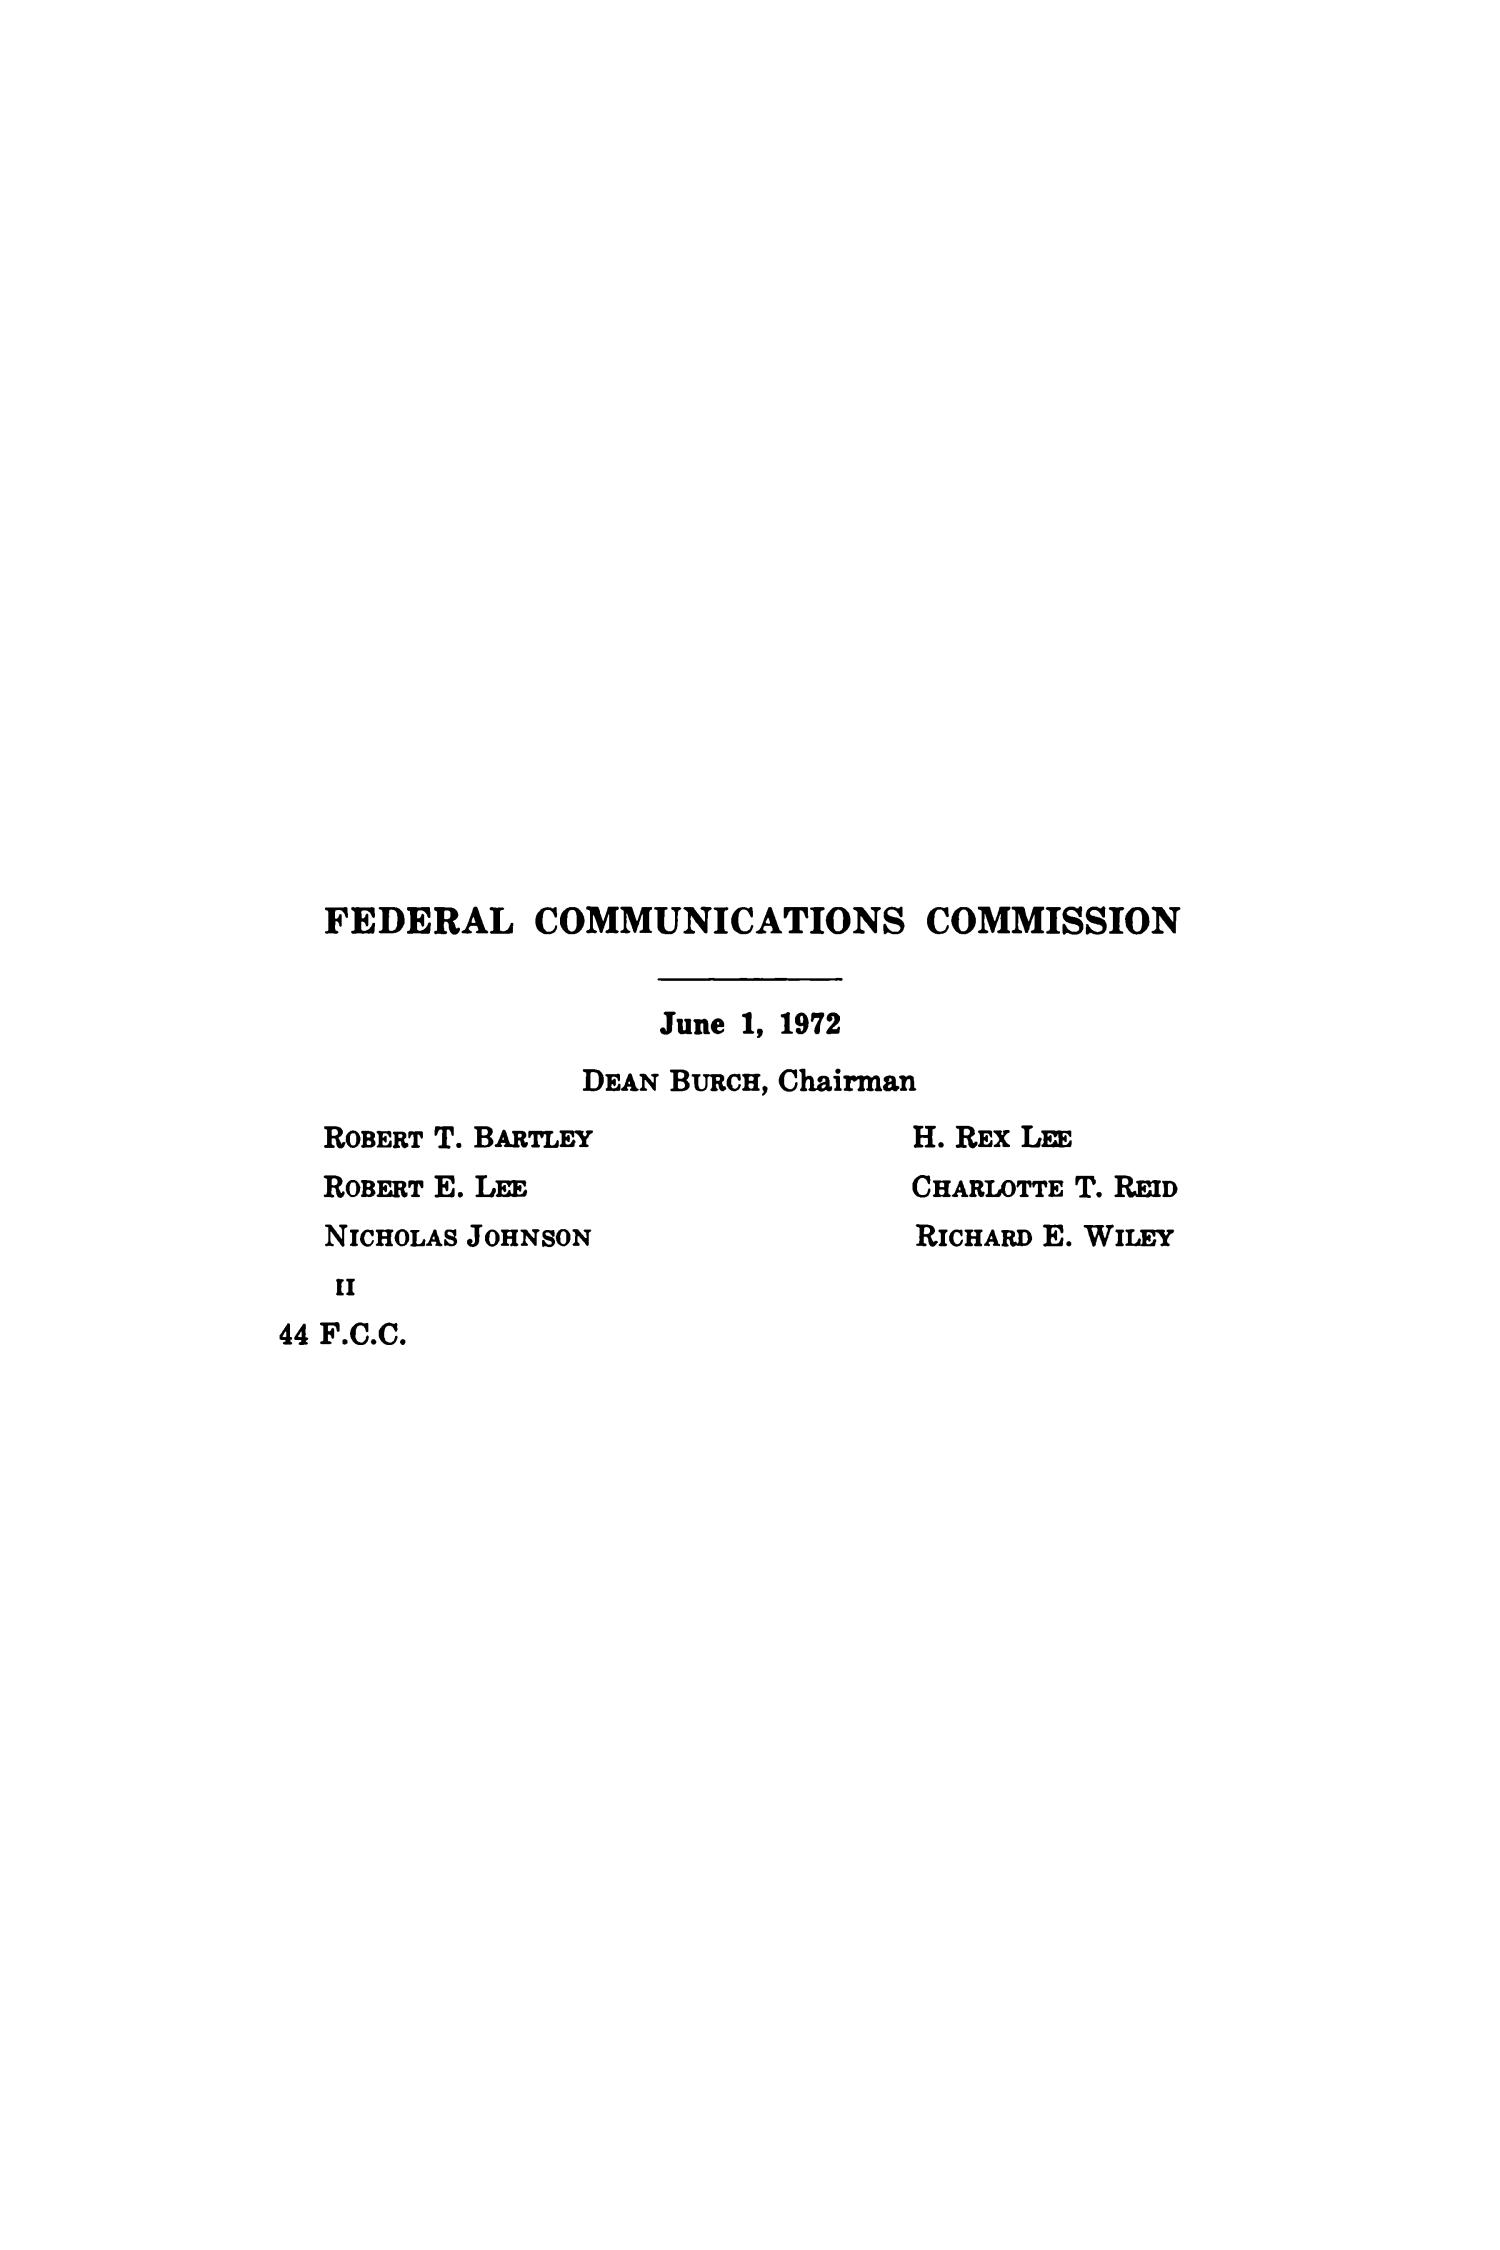 FCC Reports, Volume 44, Part 1, October 13, 1954 to April 14, 1959                                                                                                      II